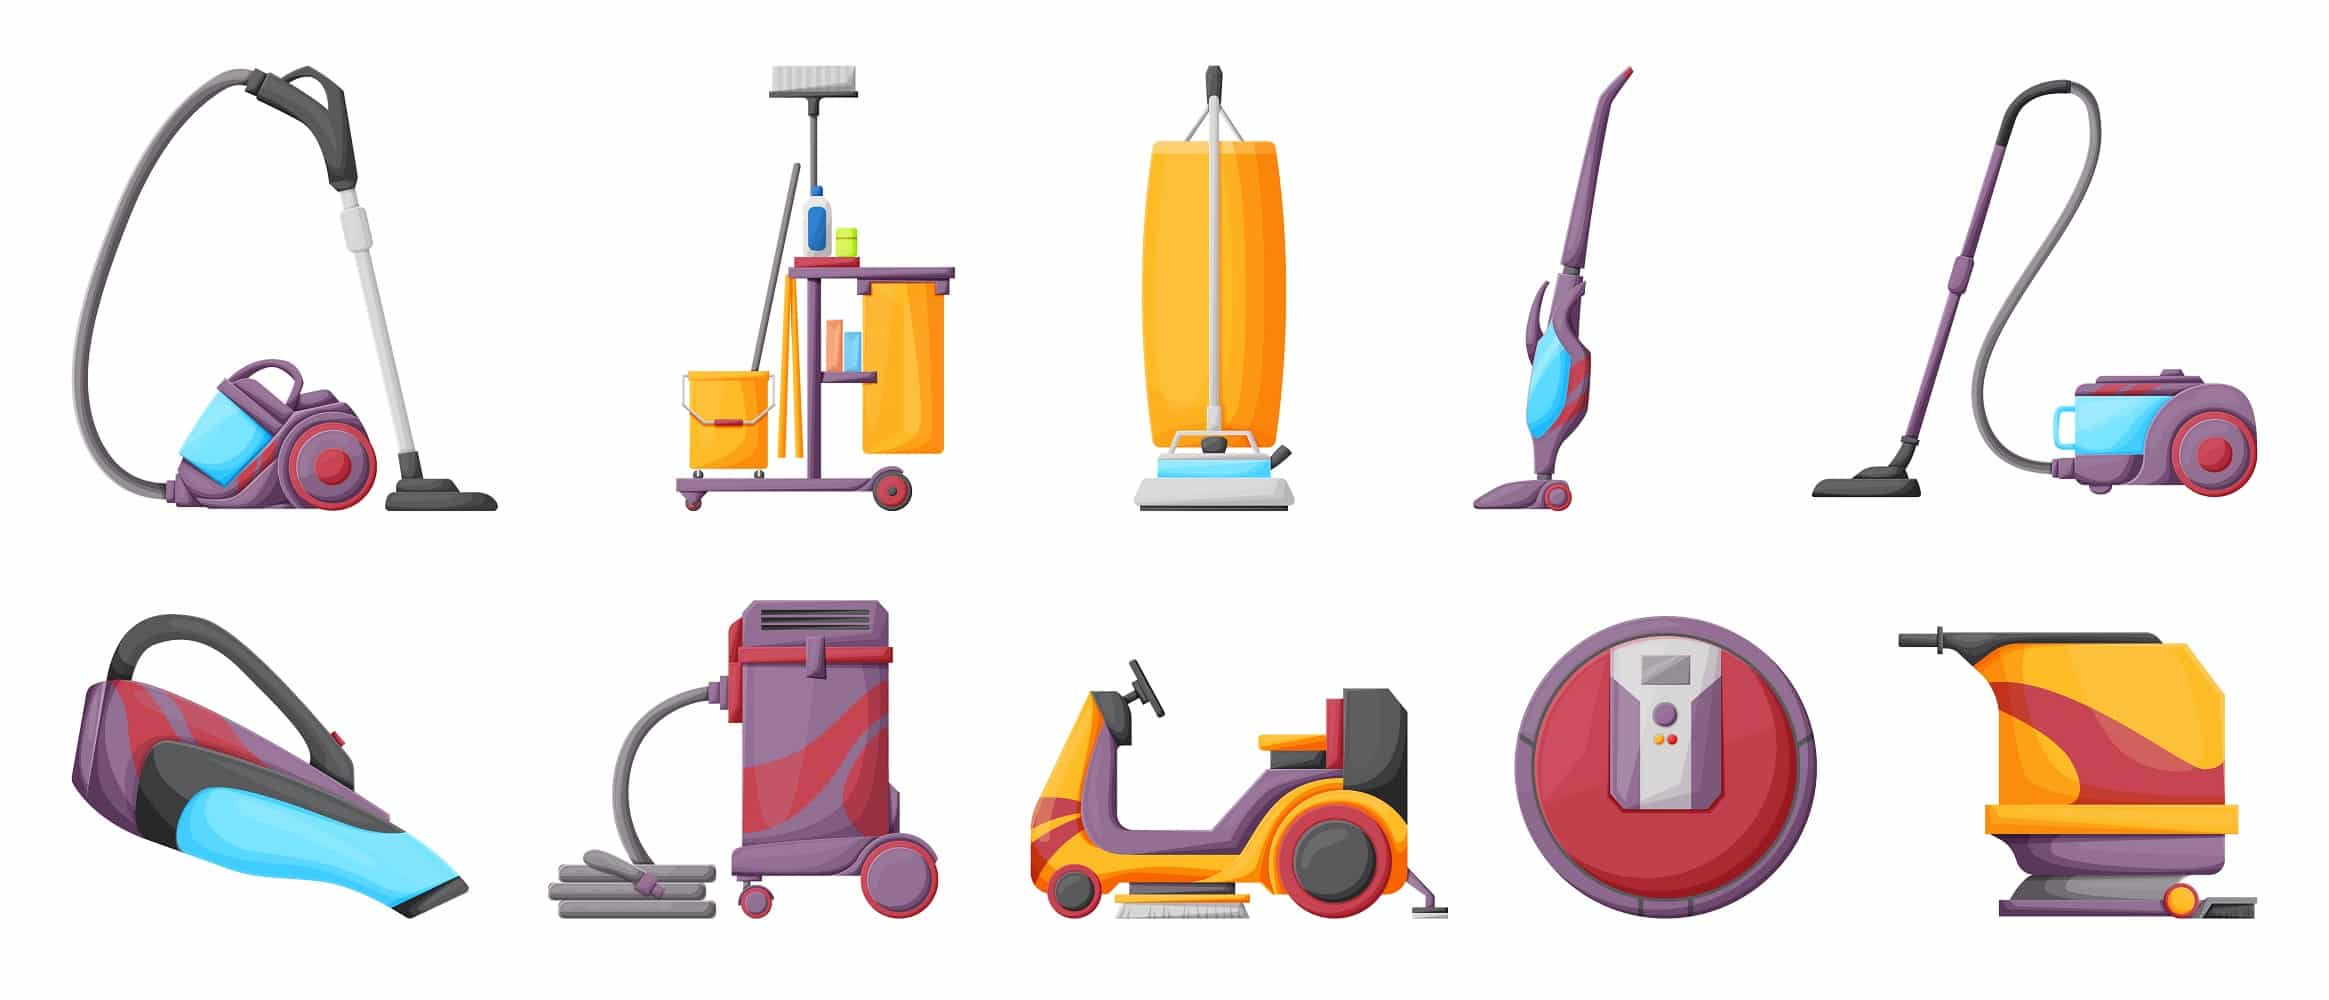 Vacuum cleaner cartoon vector illustration on white background . Set icon vacuum cleaner for cleaning .Cartoon vector icons hoover for cleaning carpet.